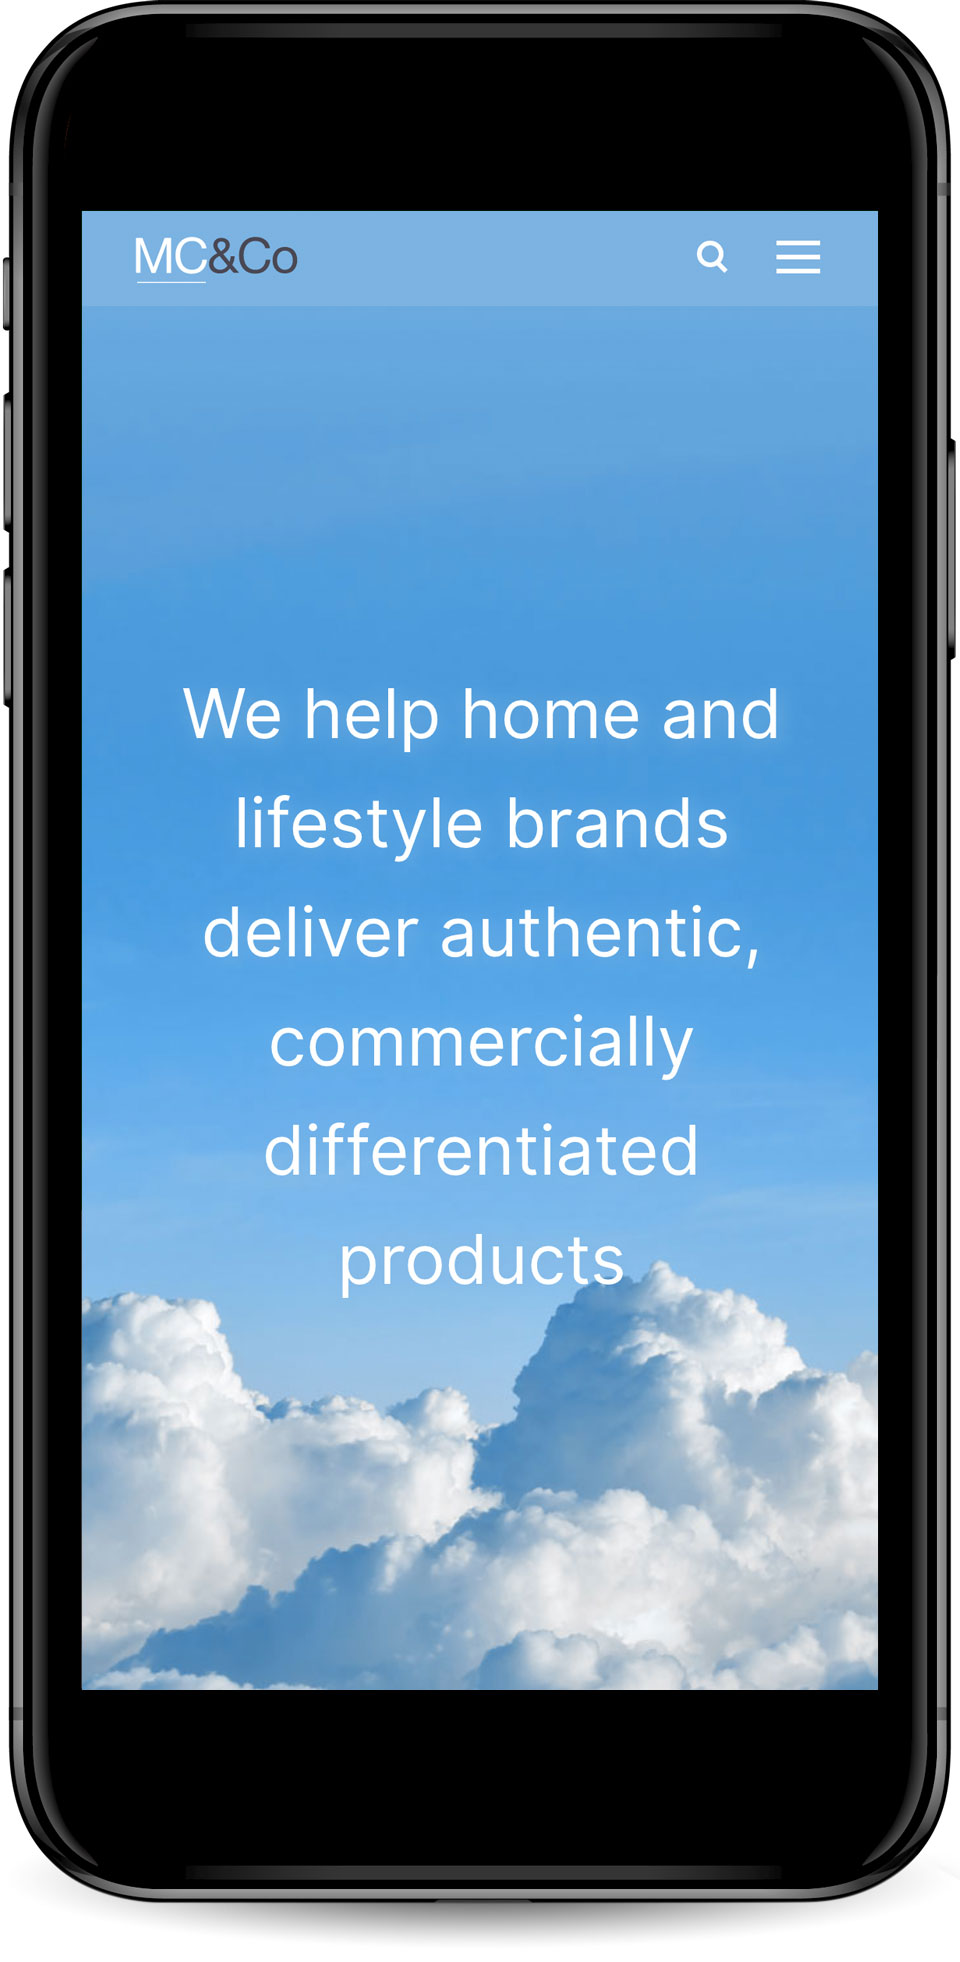 Web design for MC&Co home page mobile view.